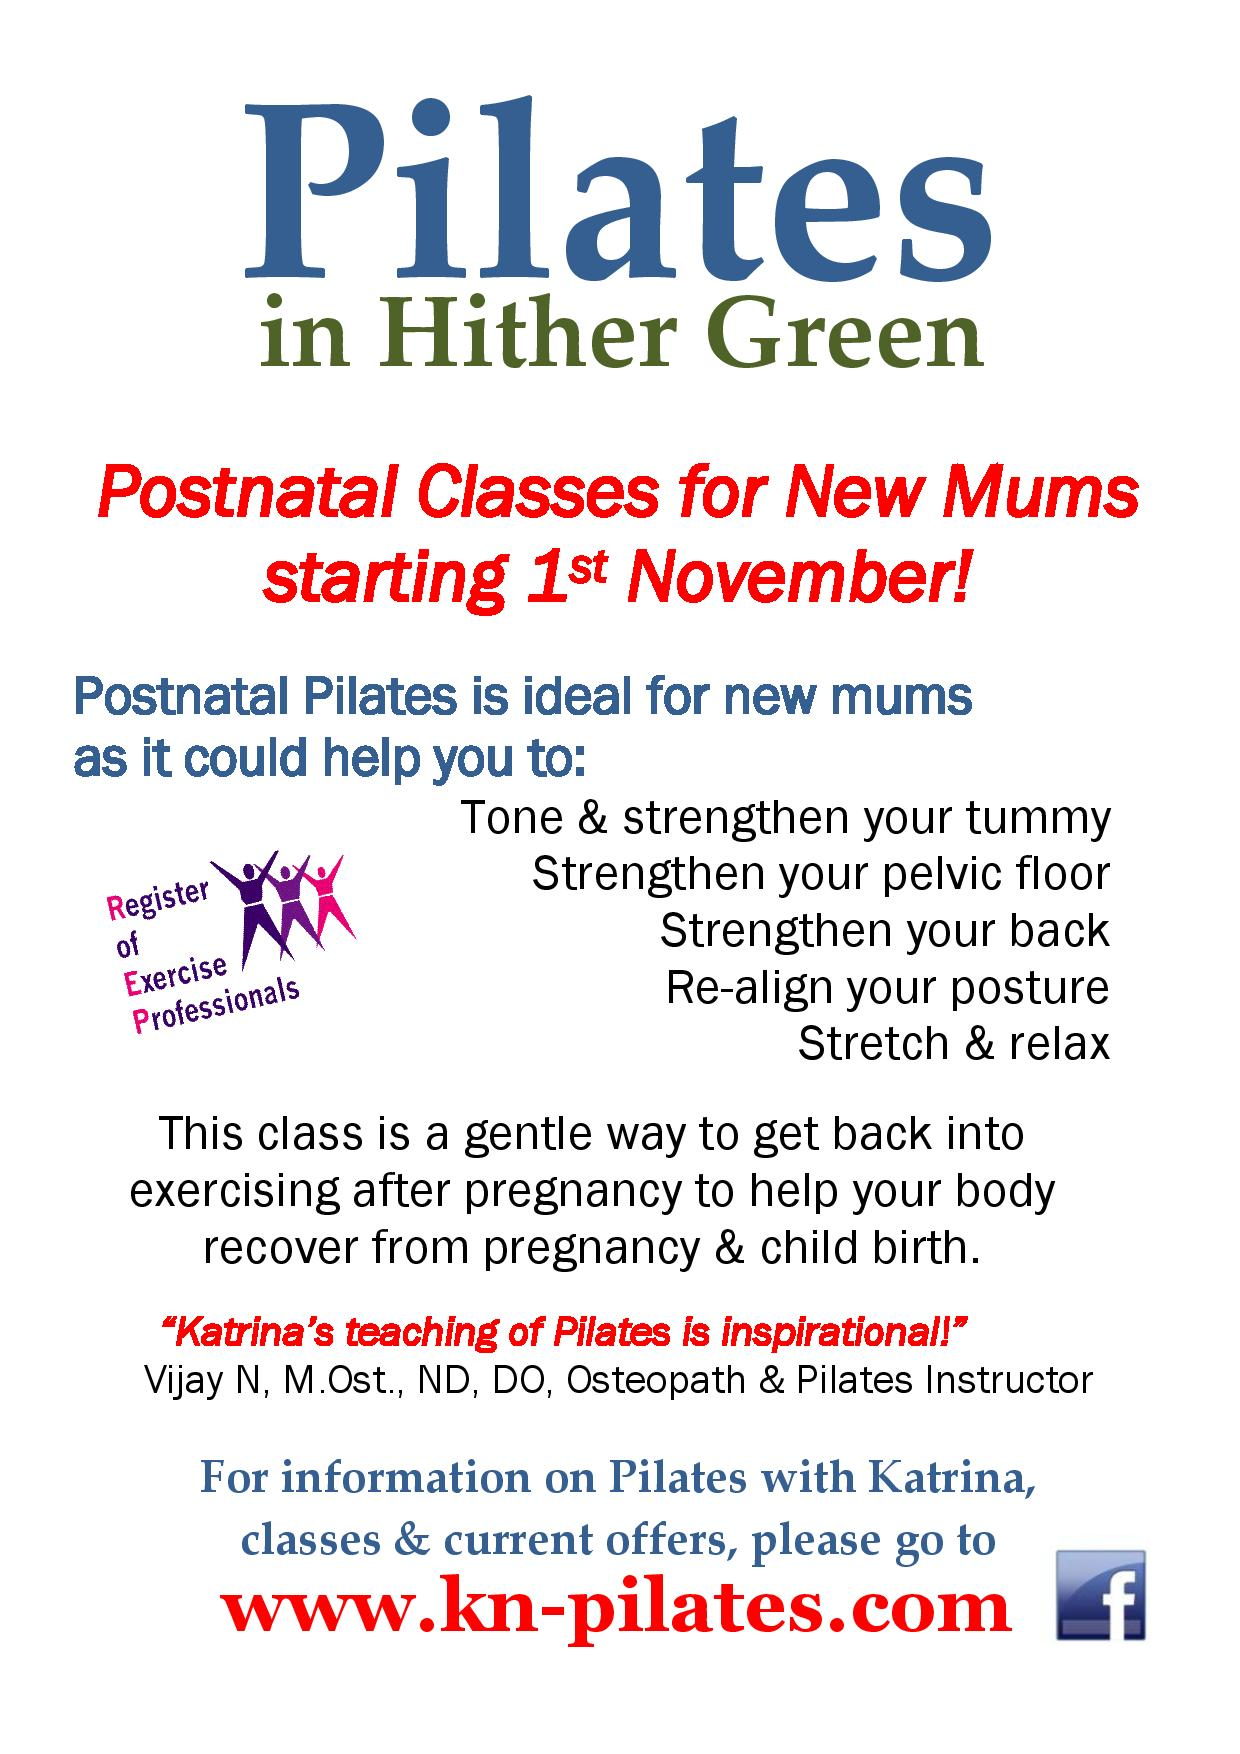 KN Pilates Hither Green postnatal-page-001